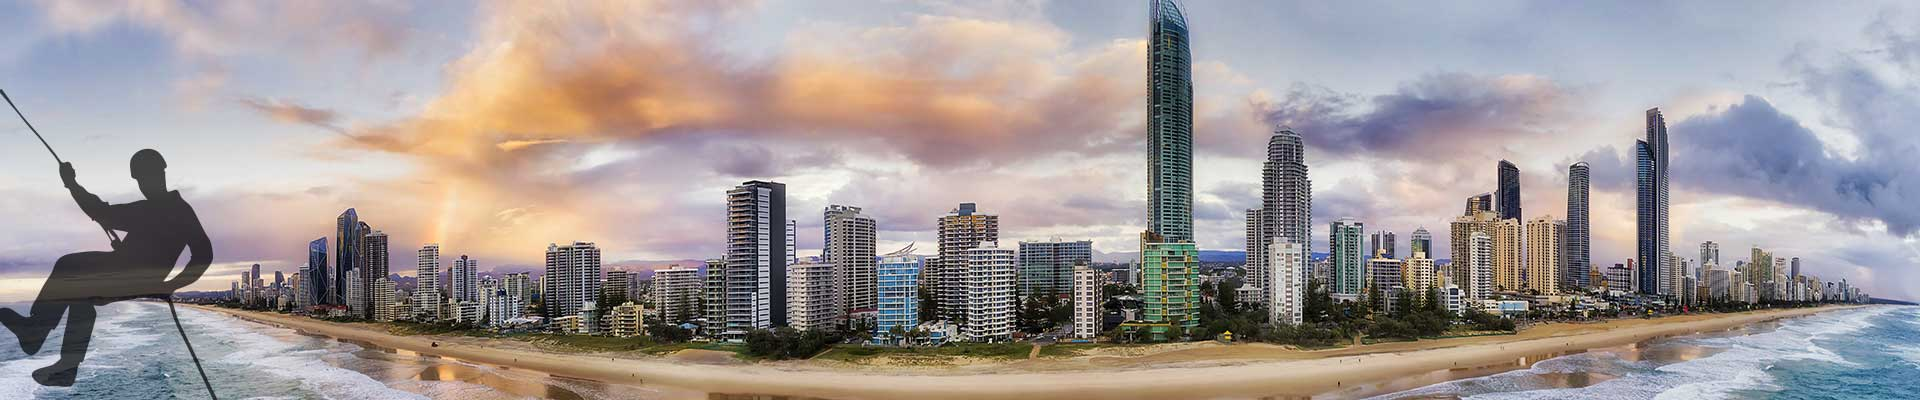 gold coast high rise building cleaner sunshine coast